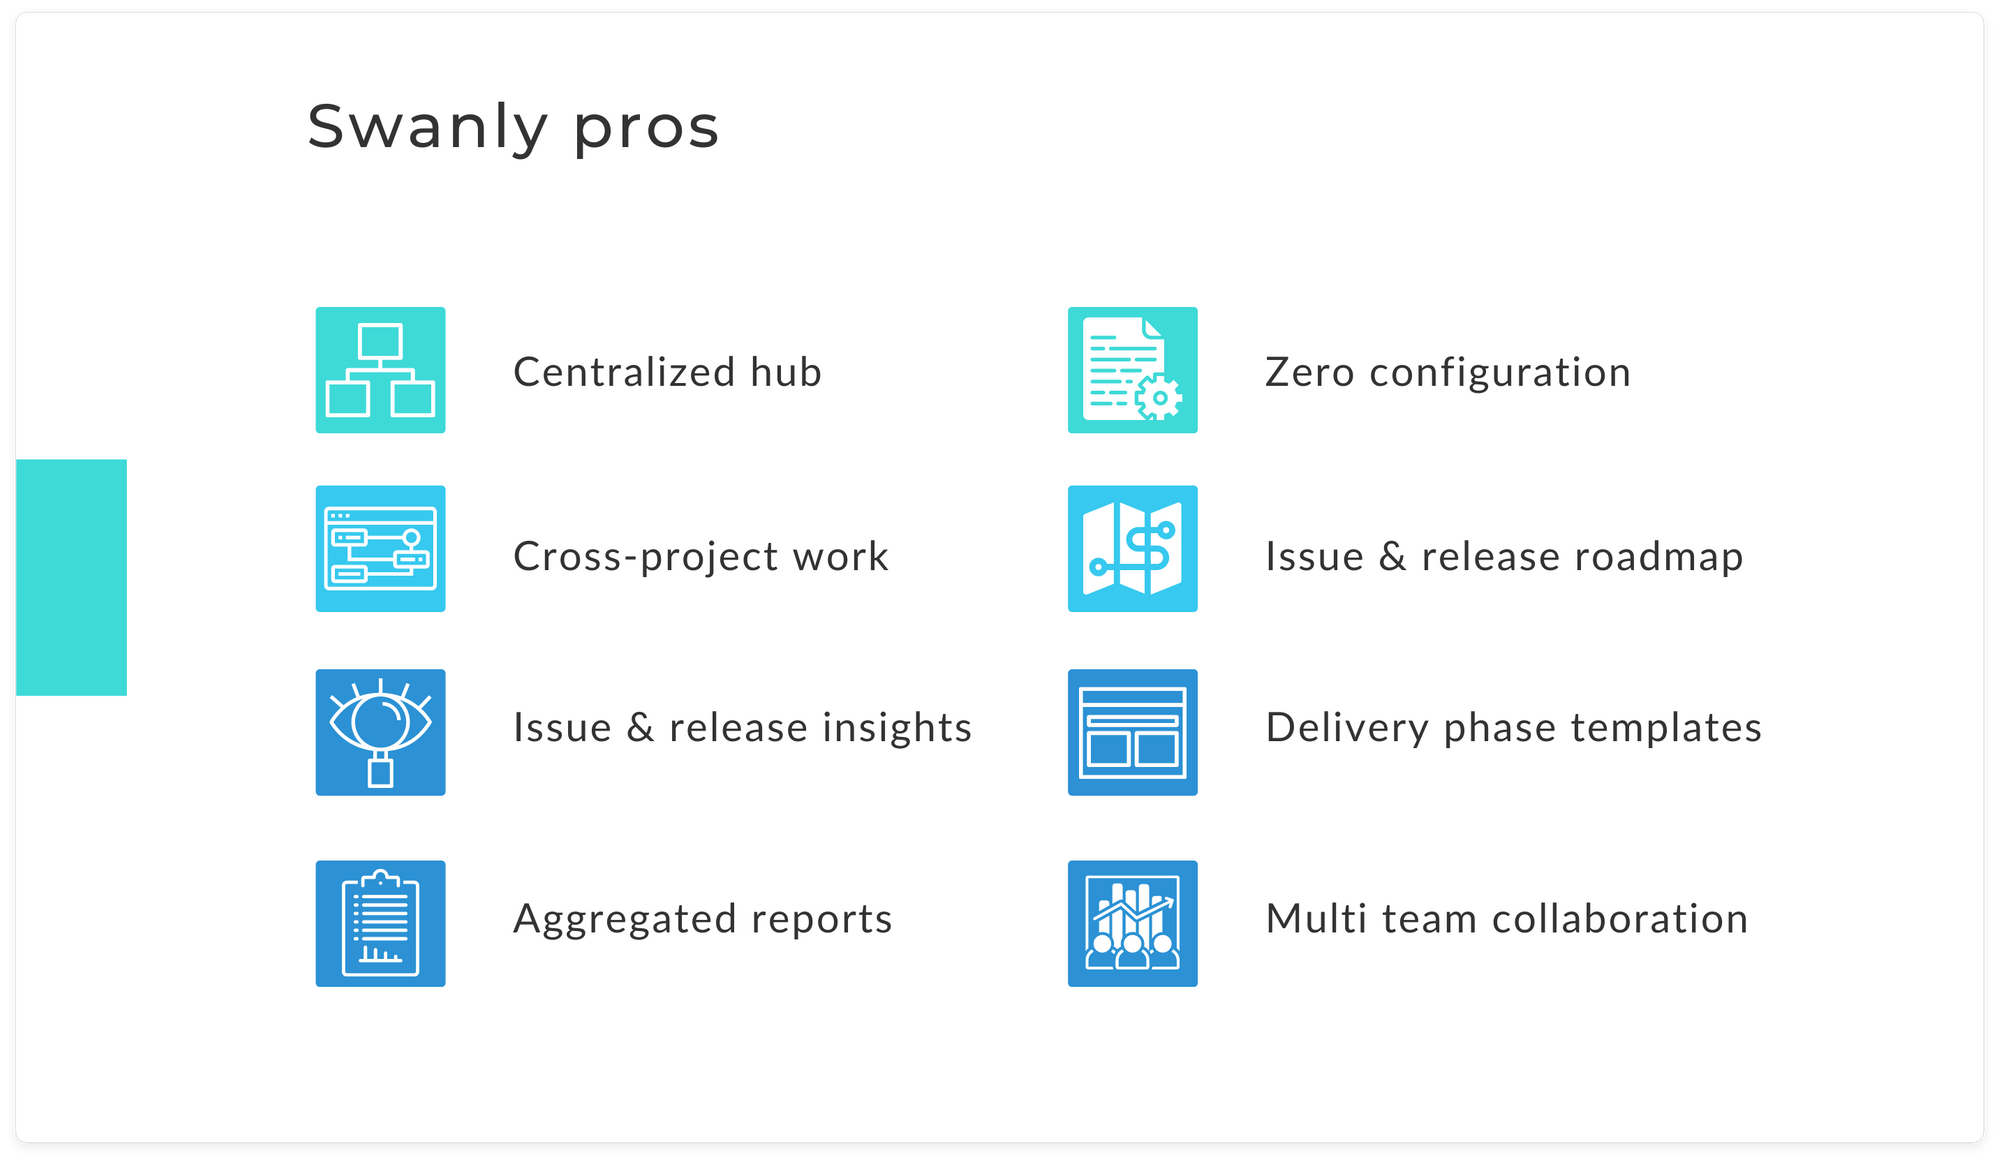 Project plan for Jira - Swanly pros